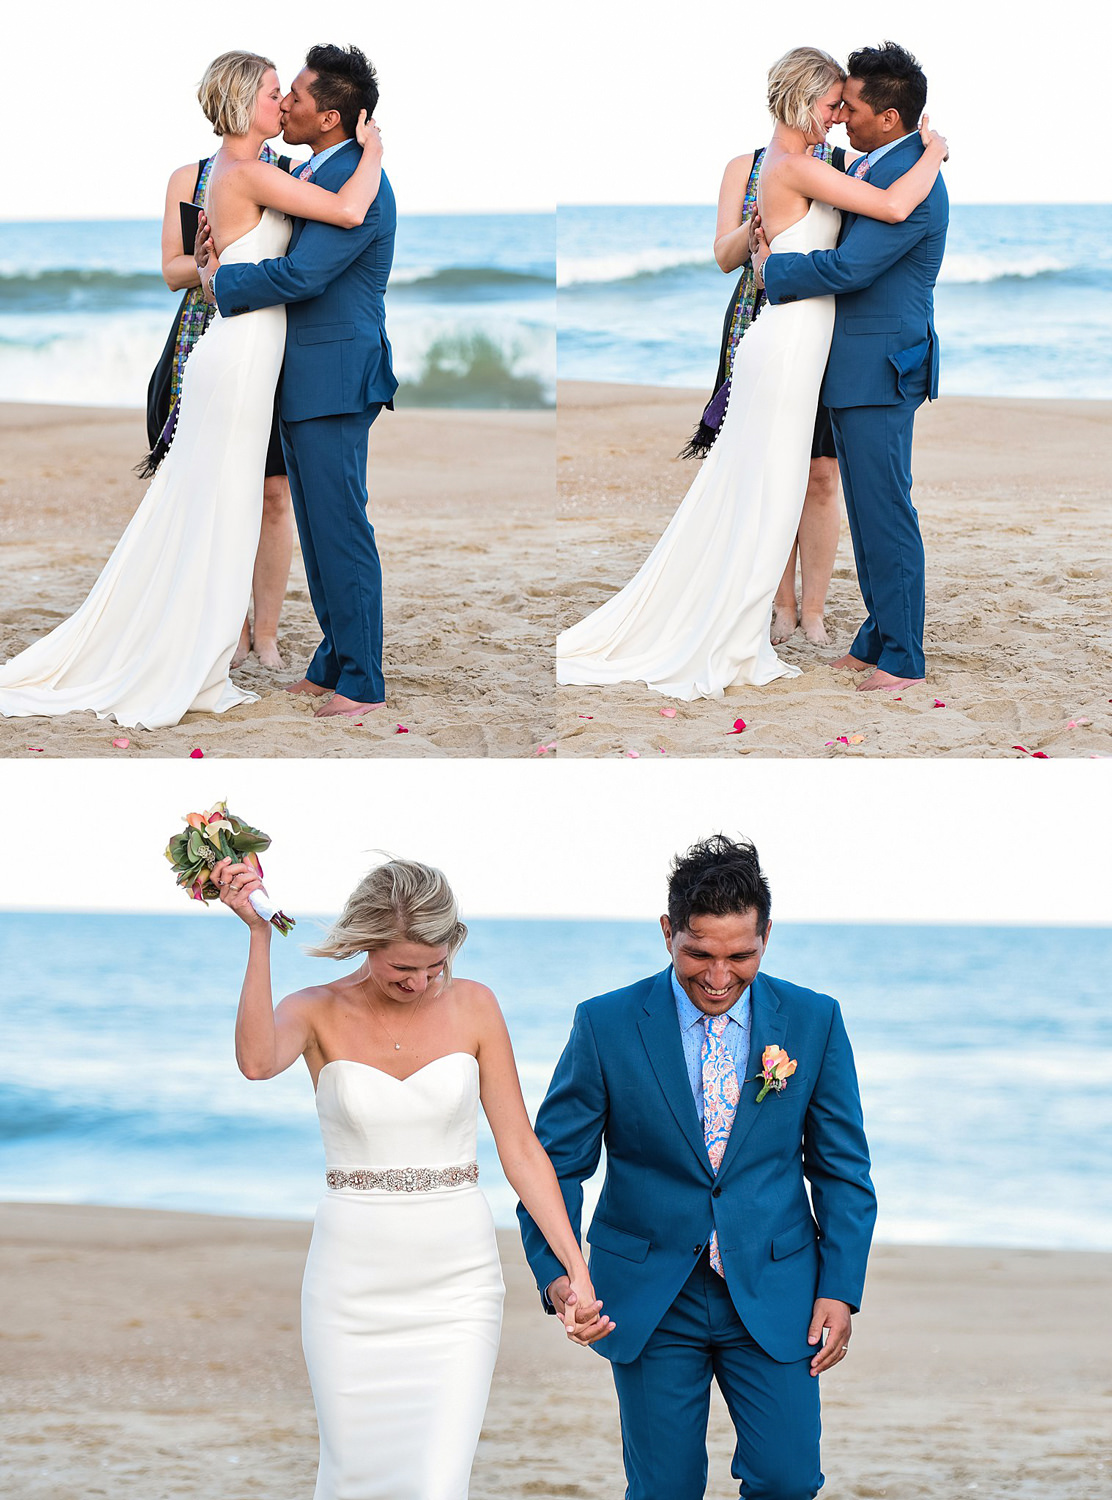 the-wedding-kiss-bride-and-groom-on-beach-sandbridge-photographer-melissa-bliss-photography.jpg